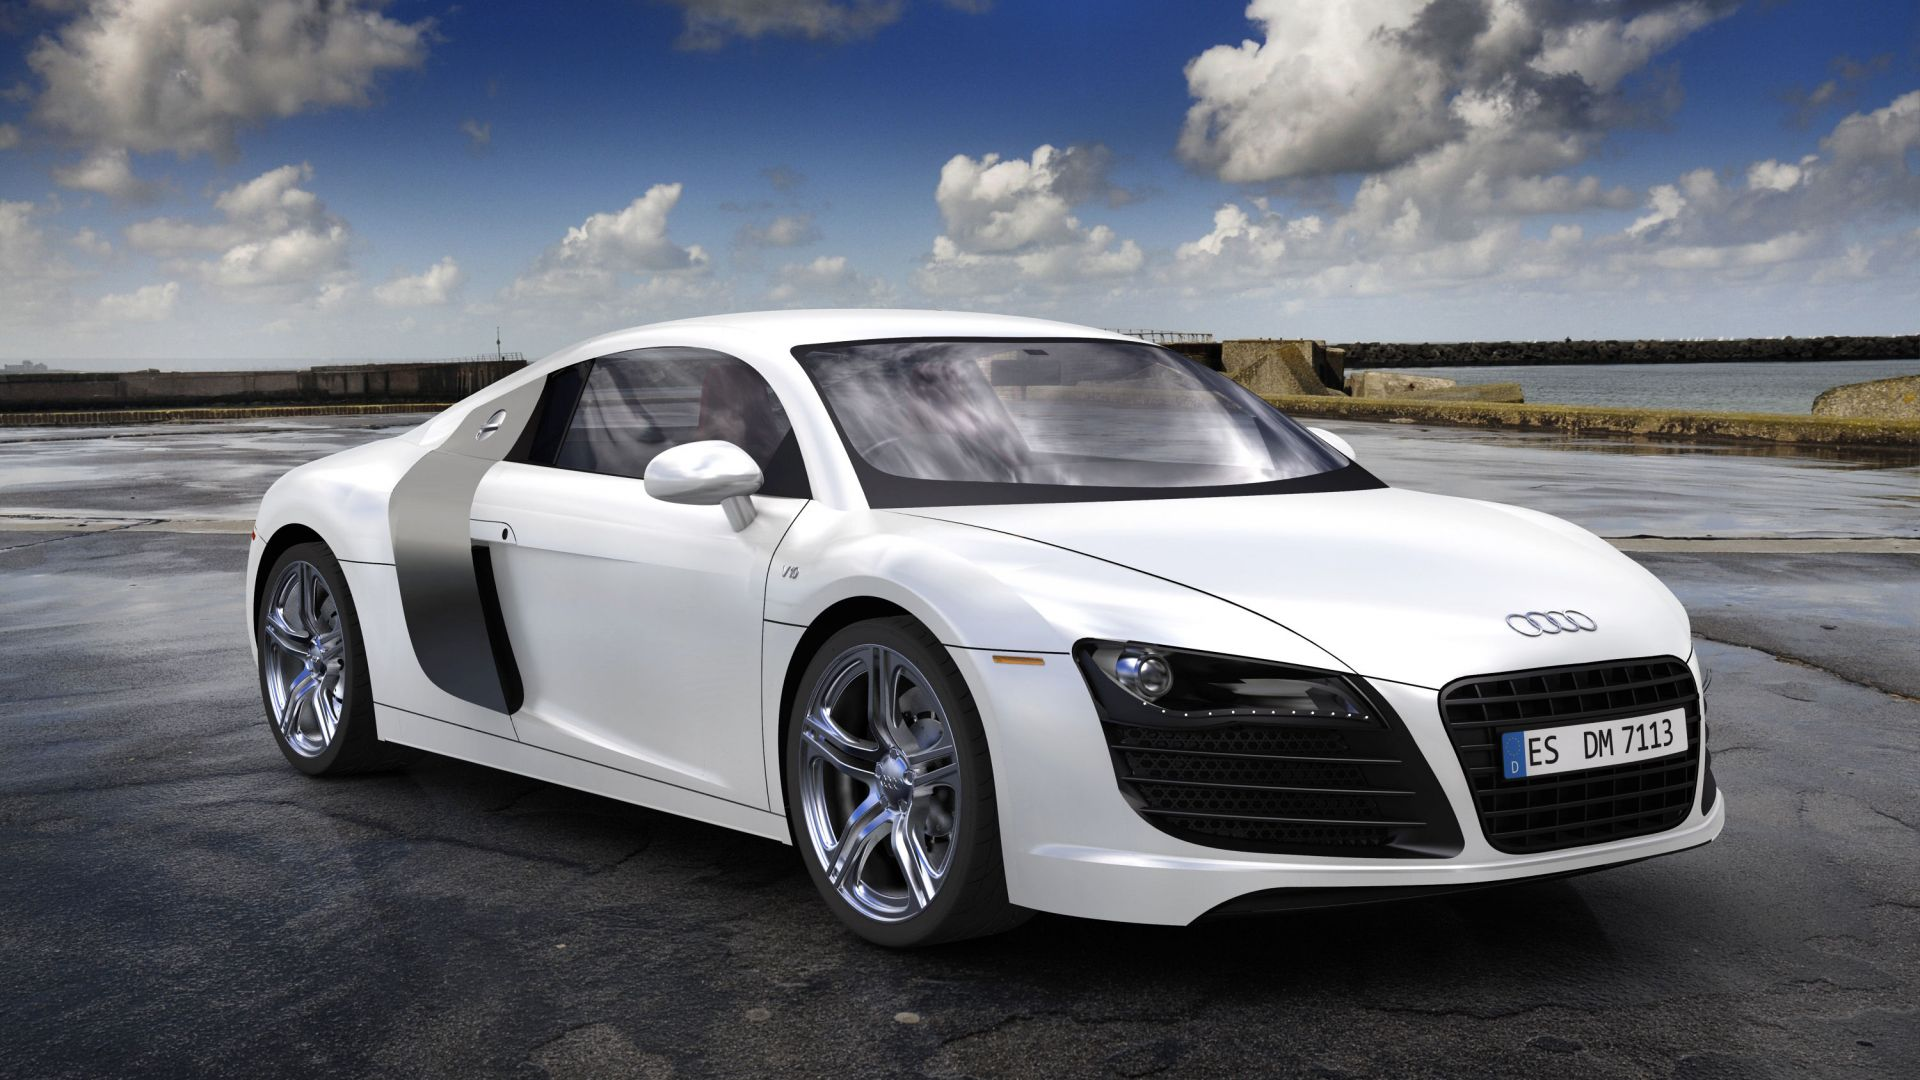 wallpaper audi r8 sport car coupe review buy rent test drive cars bikes 6975. Black Bedroom Furniture Sets. Home Design Ideas